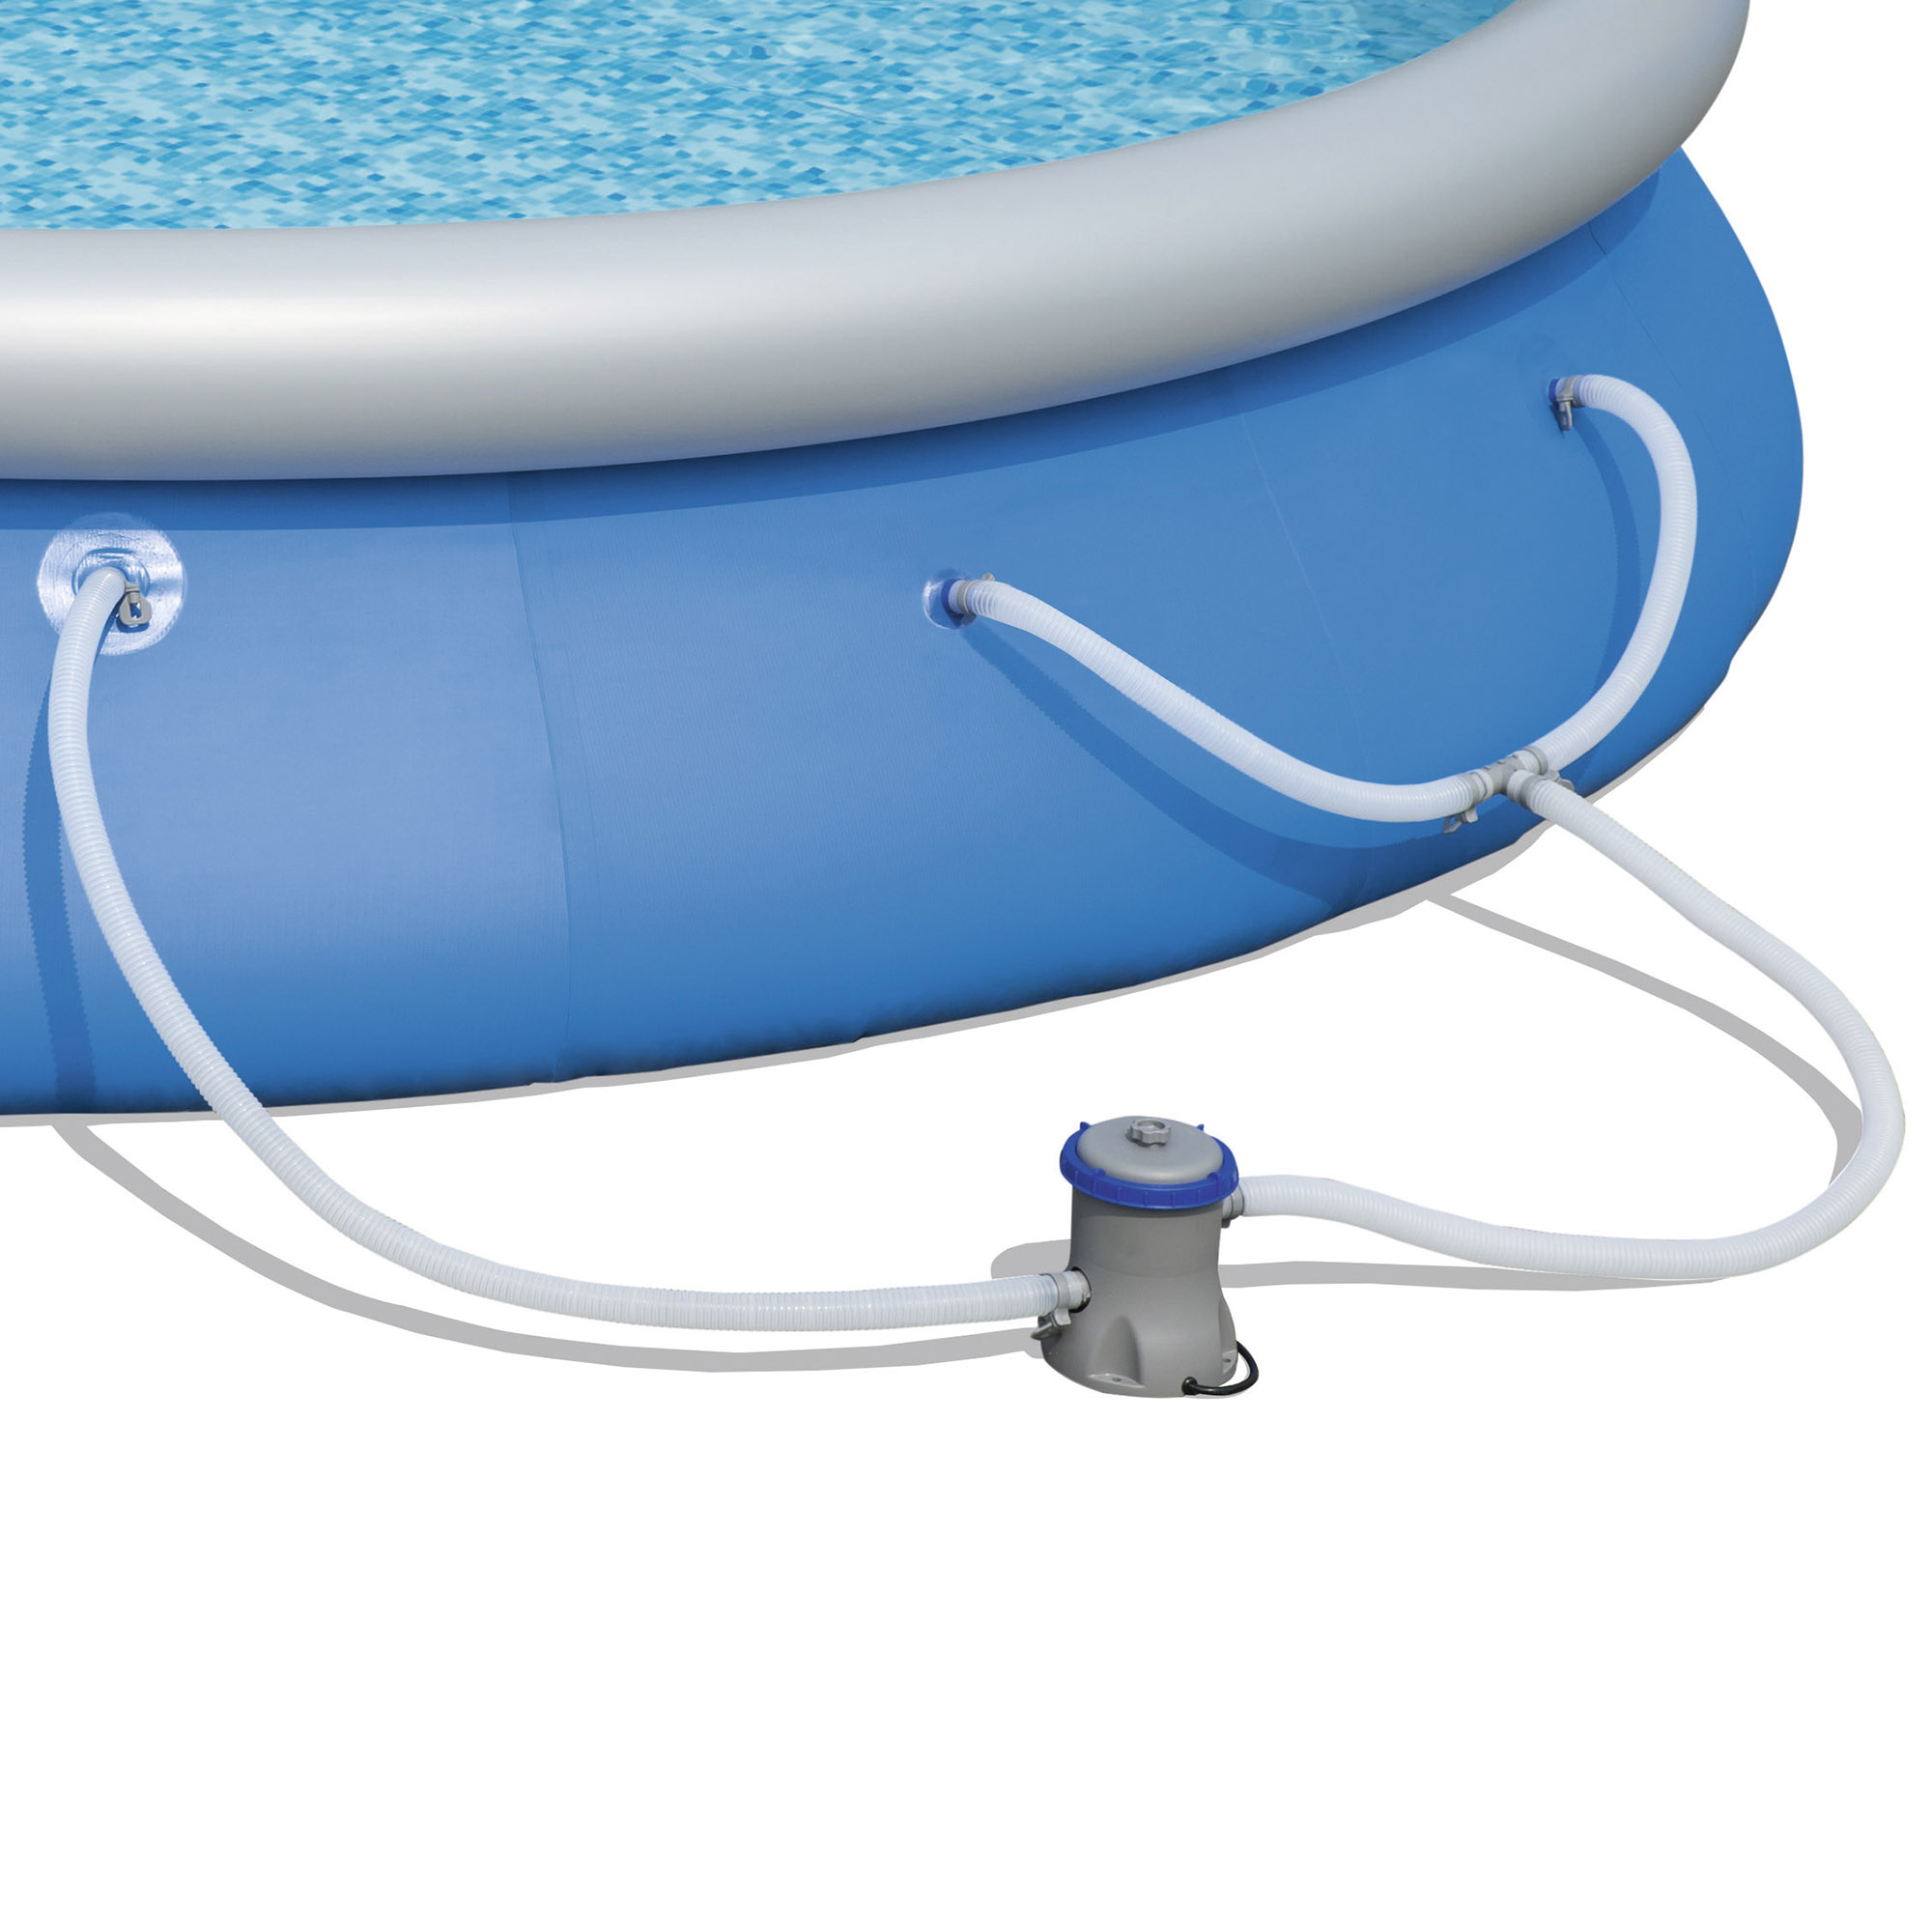 Bestway 15 39 X 33 Fast Set Inflatable Above Ground Swimming Pool W Filter Pump Ebay